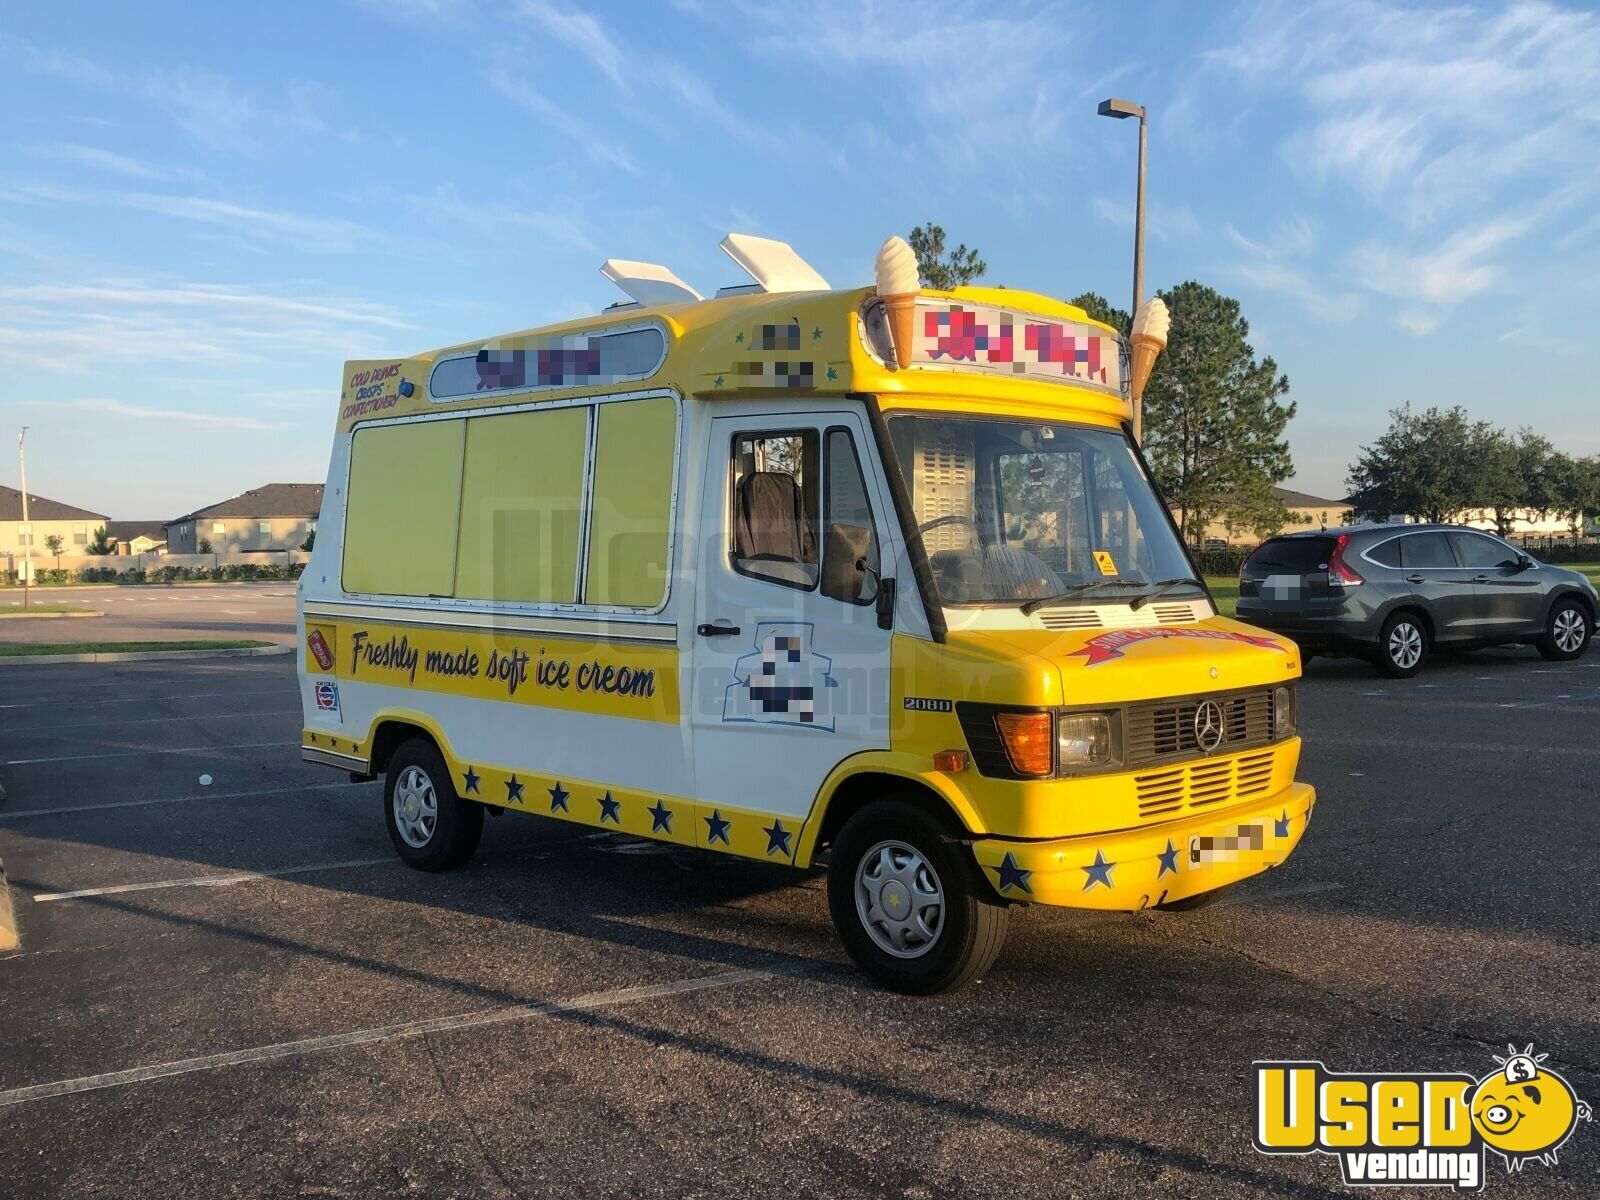 1990 Mercedes 208d Ice Cream Truck Reach-in Upright Cooler Florida Diesel Engine for Sale - 4